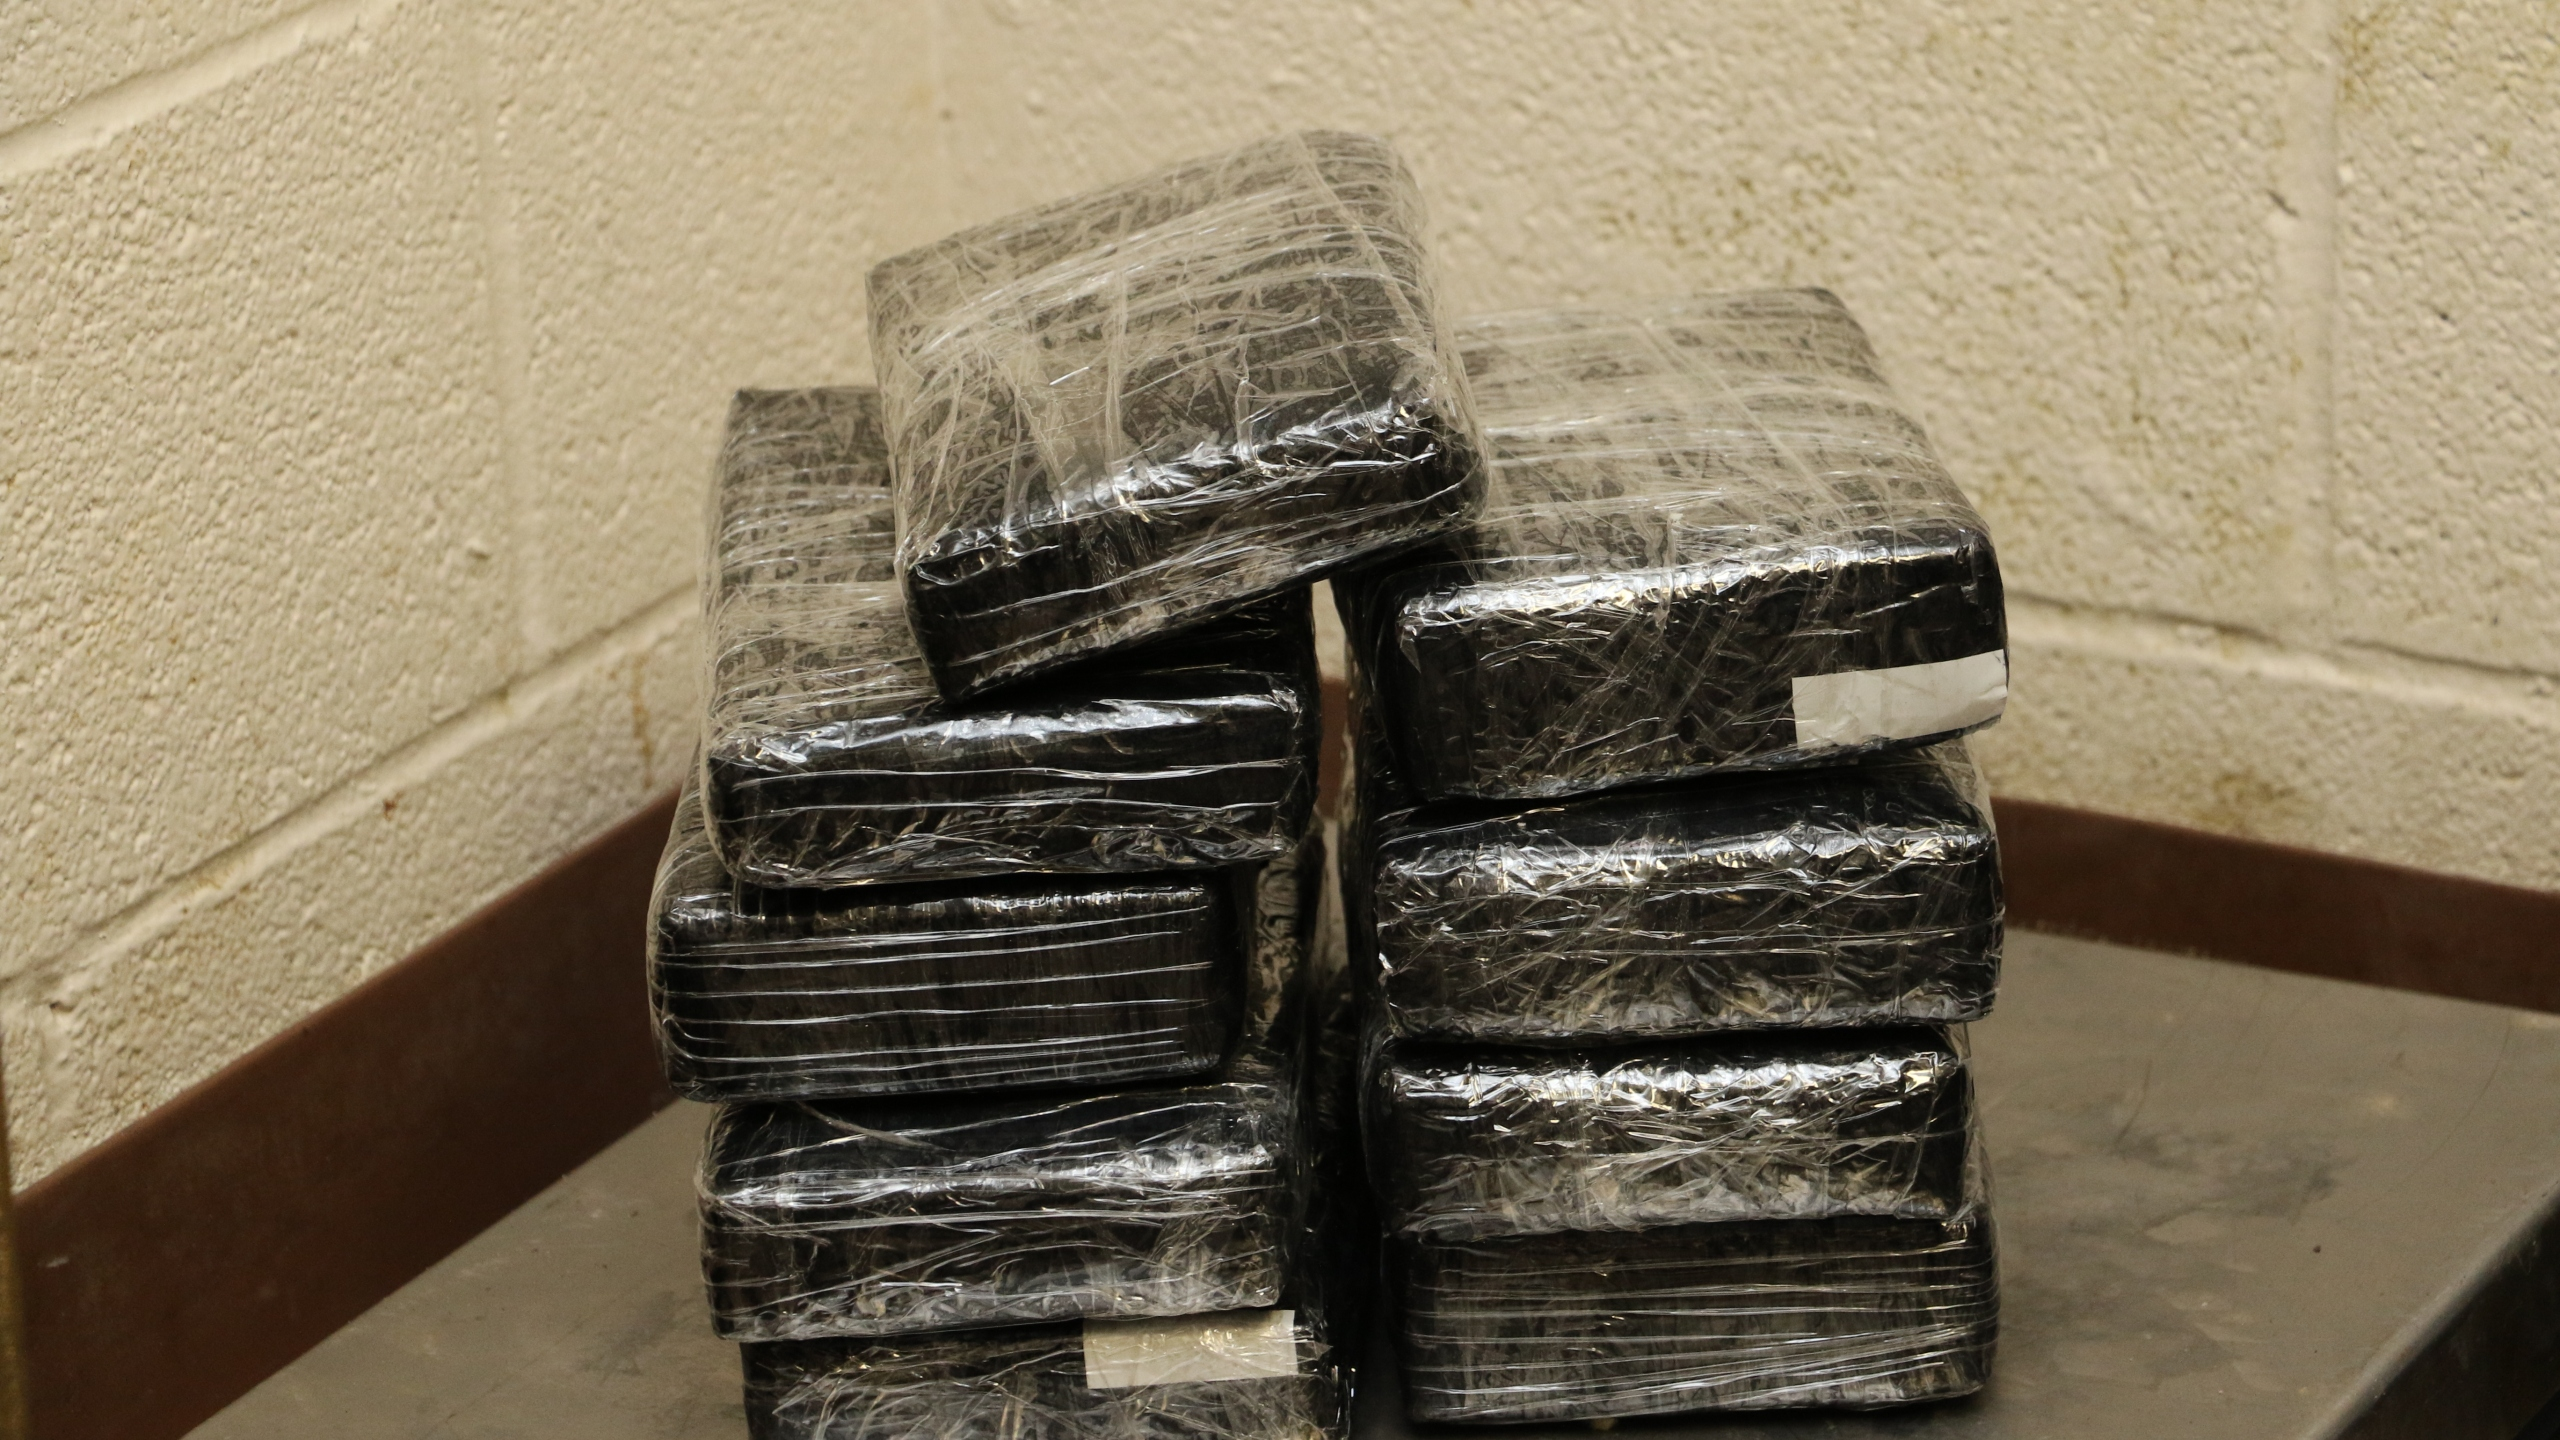 20161010 Gateway Cocaine Seizure, Courtesy of CBP Brownsville_1476209202164.JPG